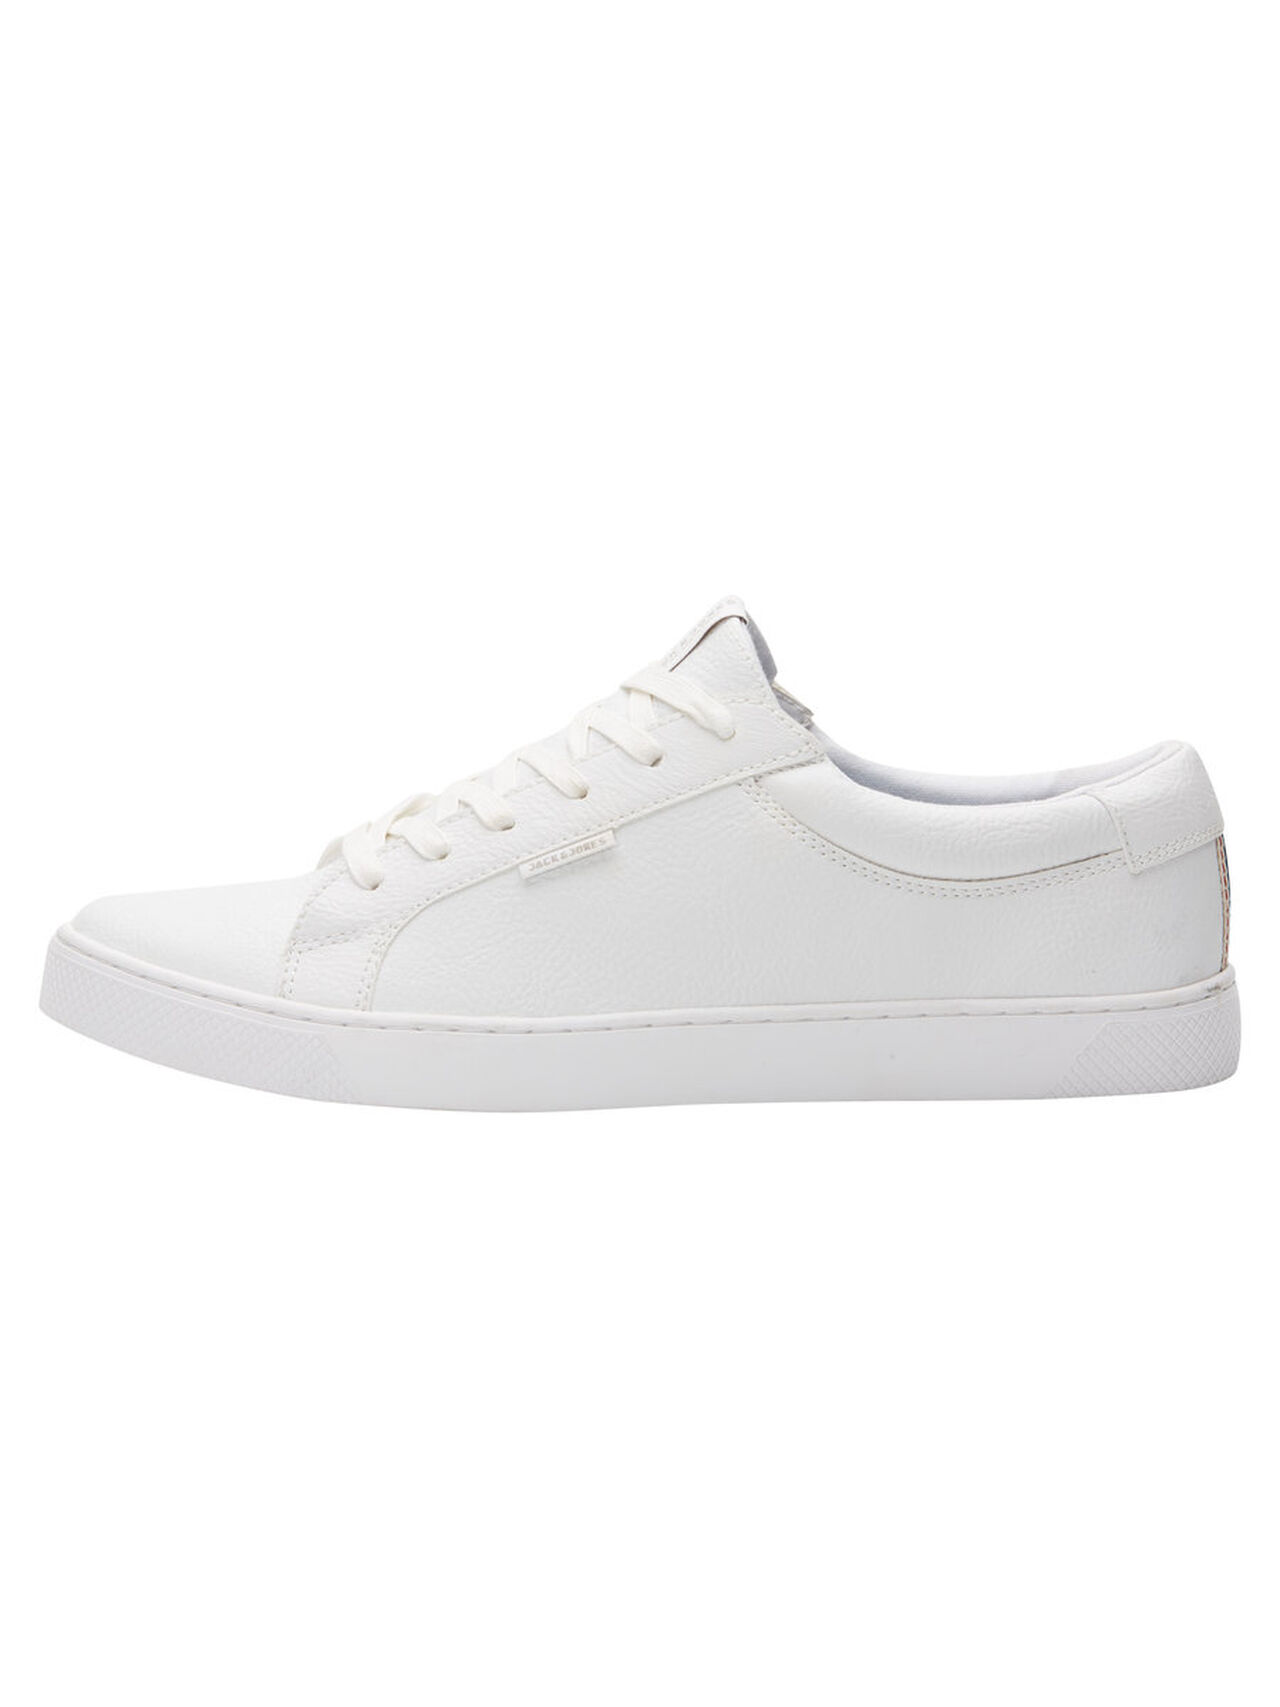 JACK & JONES Classic Sneakers Men White